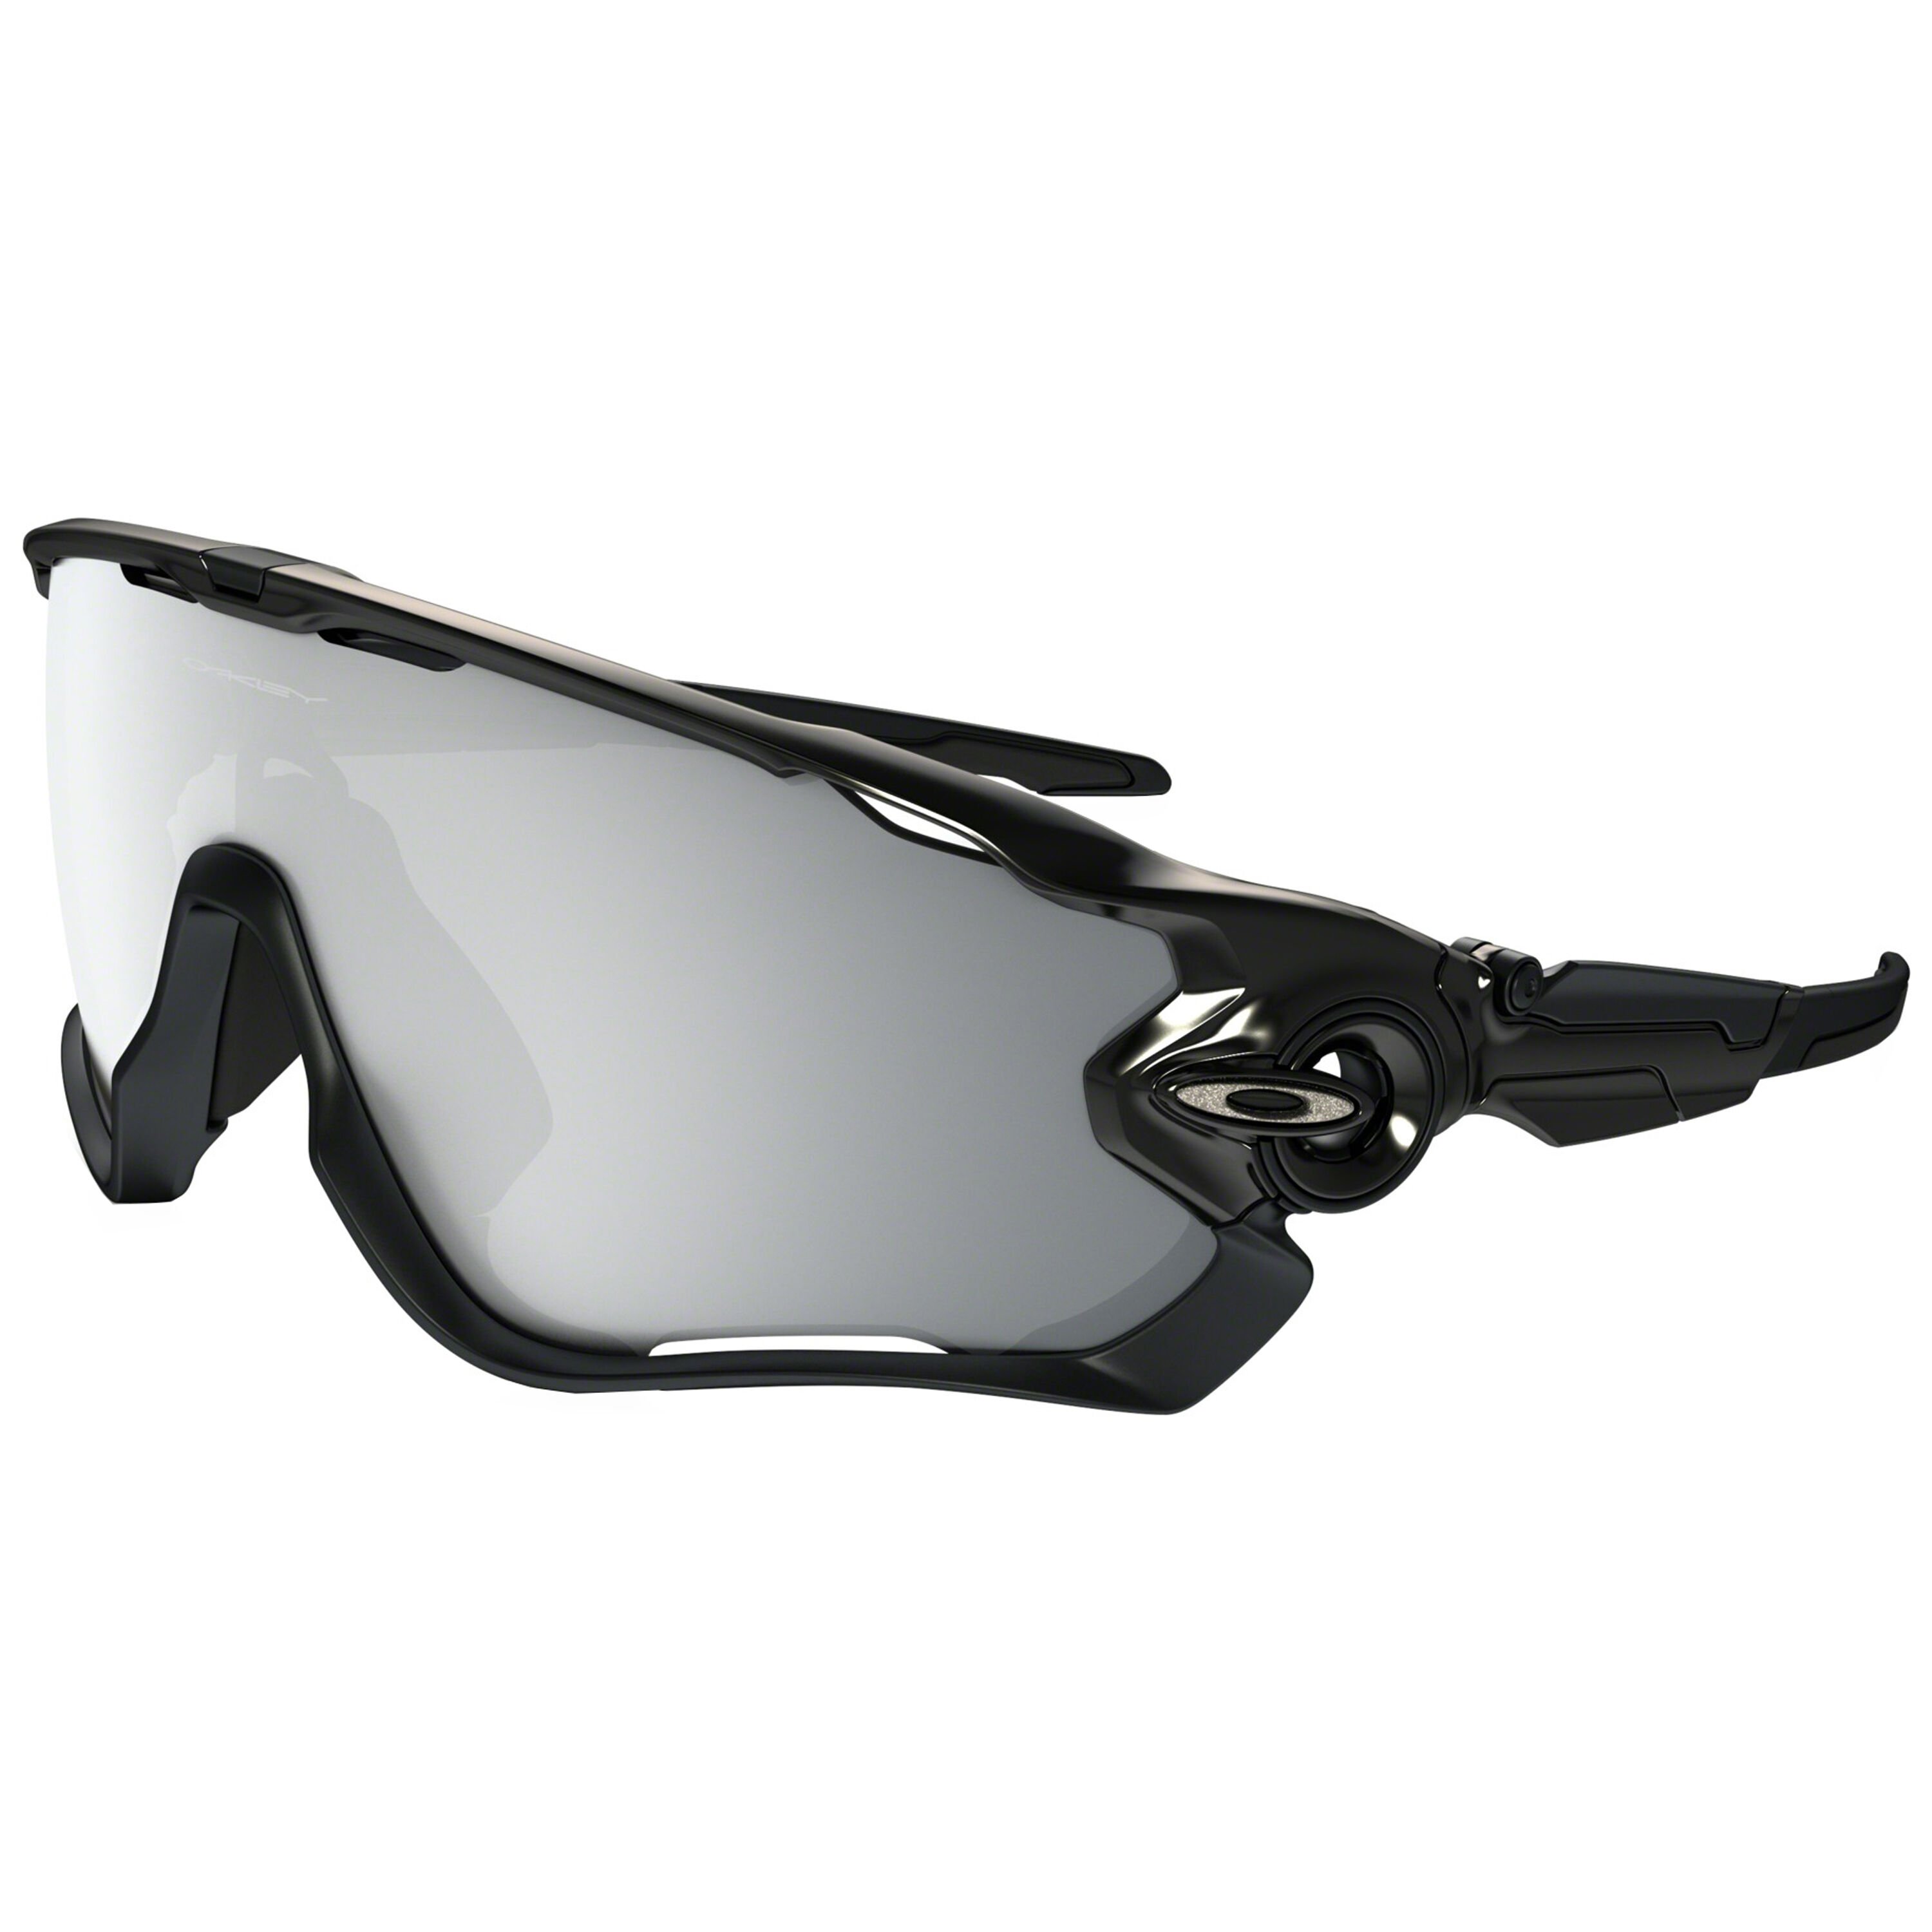 c447f34d84 Oakley Cycling Sunglasses South Africa « One More Soul